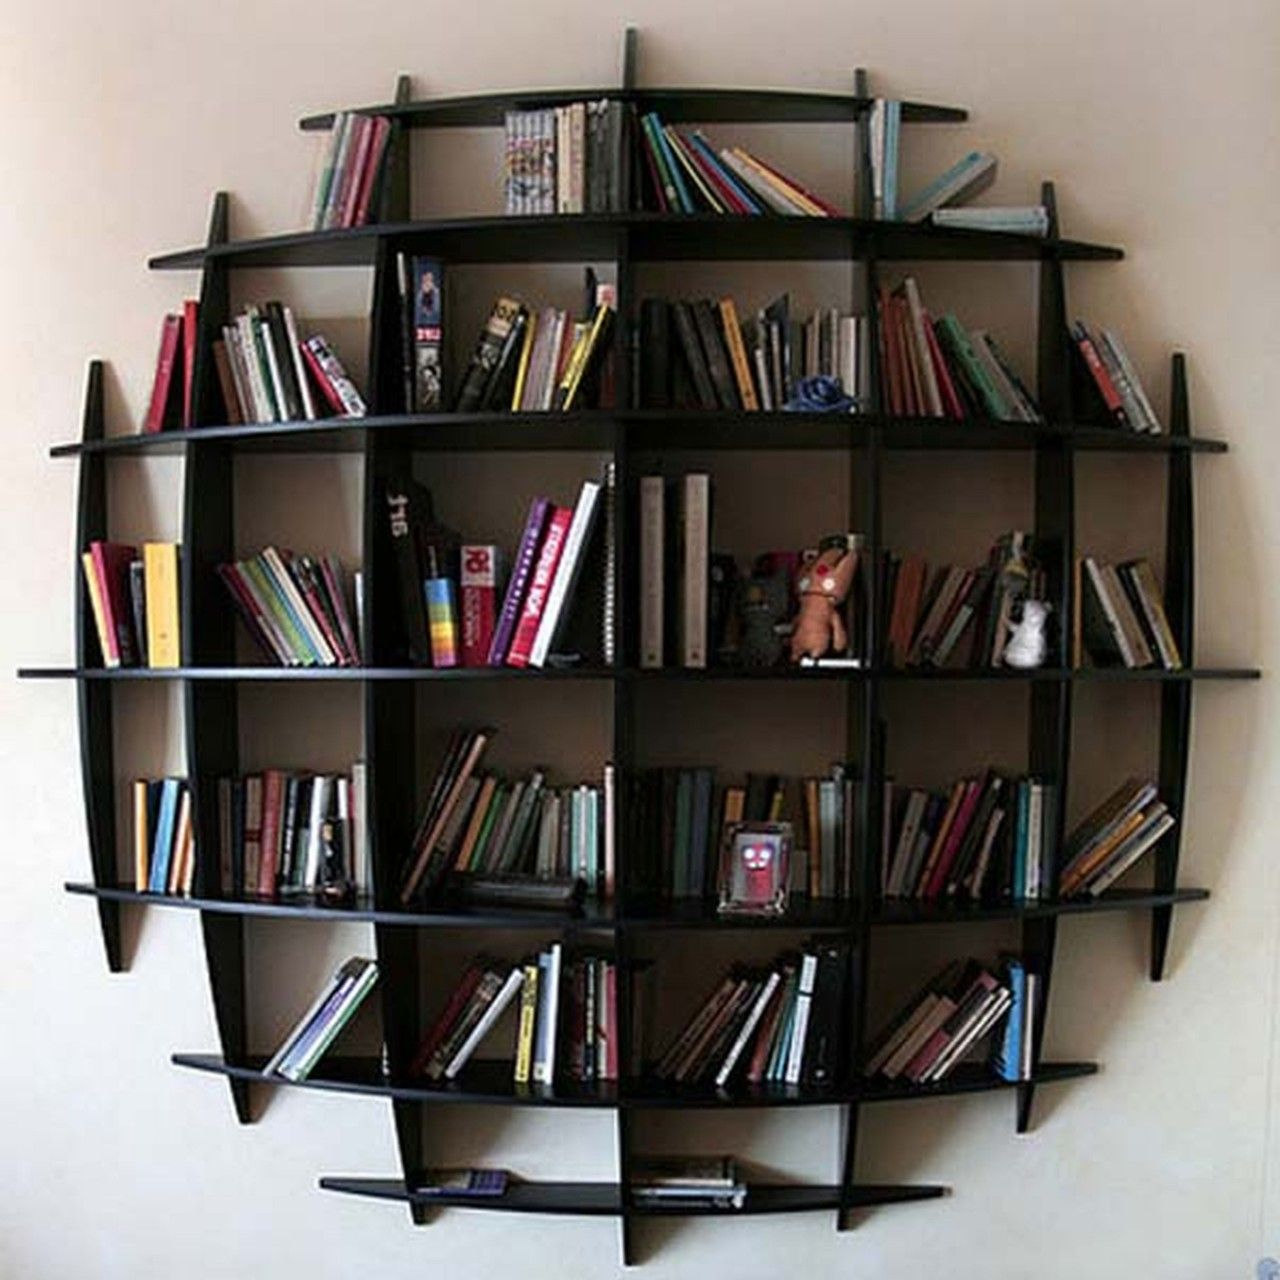 Agreeable Full Wall Bookshelves Complexion Entrancing Metal Bookshelves  Marvelous Decoration Coloration, Attractive Bookshelves Design Cool And  Innovative ...